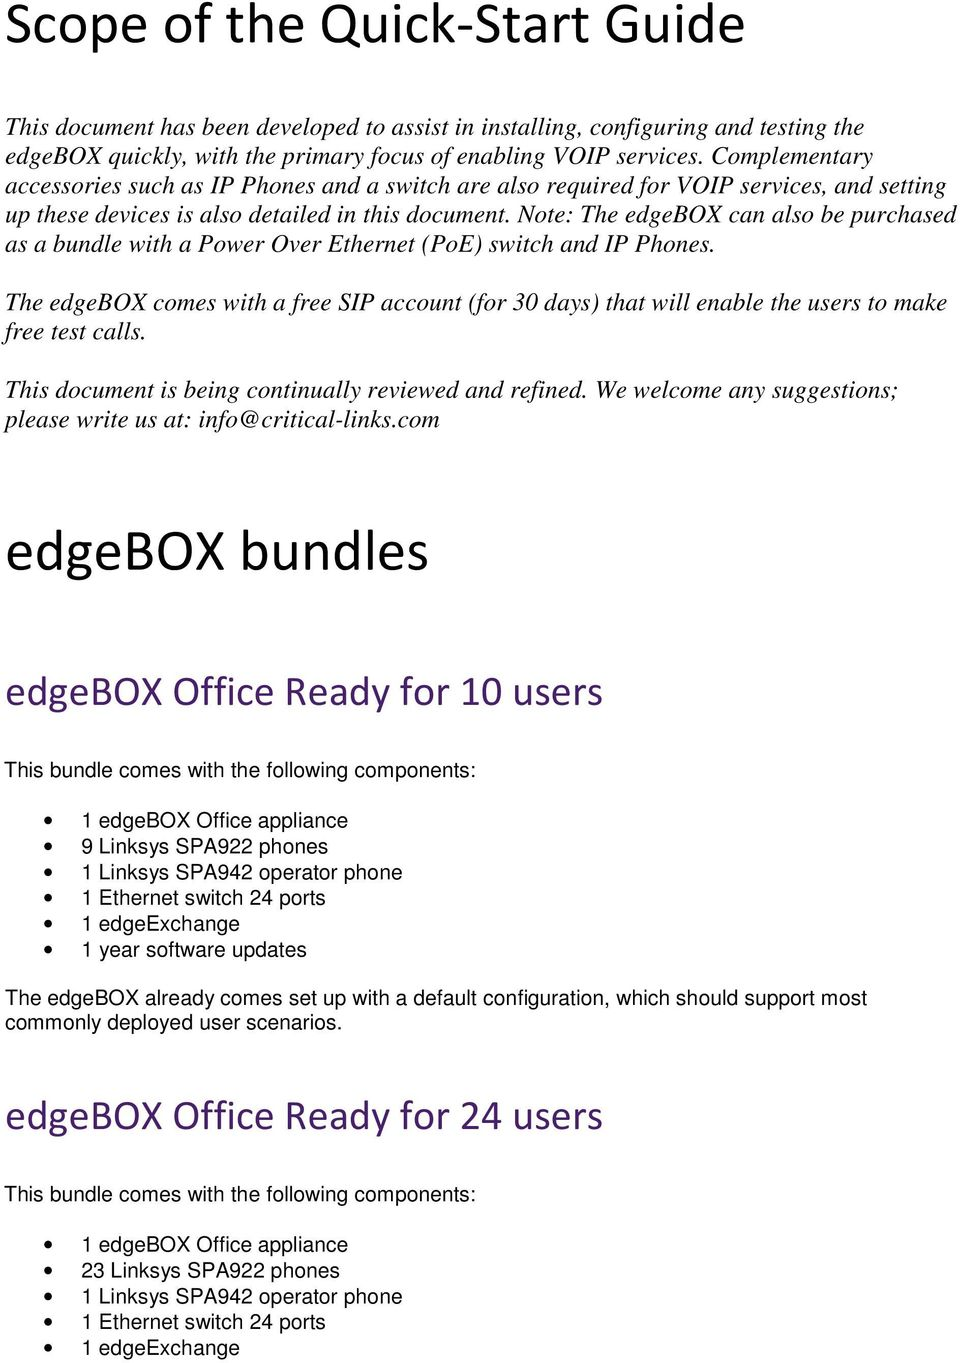 Note: The edgebox can also be purchased as a bundle with a Power Over Ethernet (PoE) switch and IP Phones.